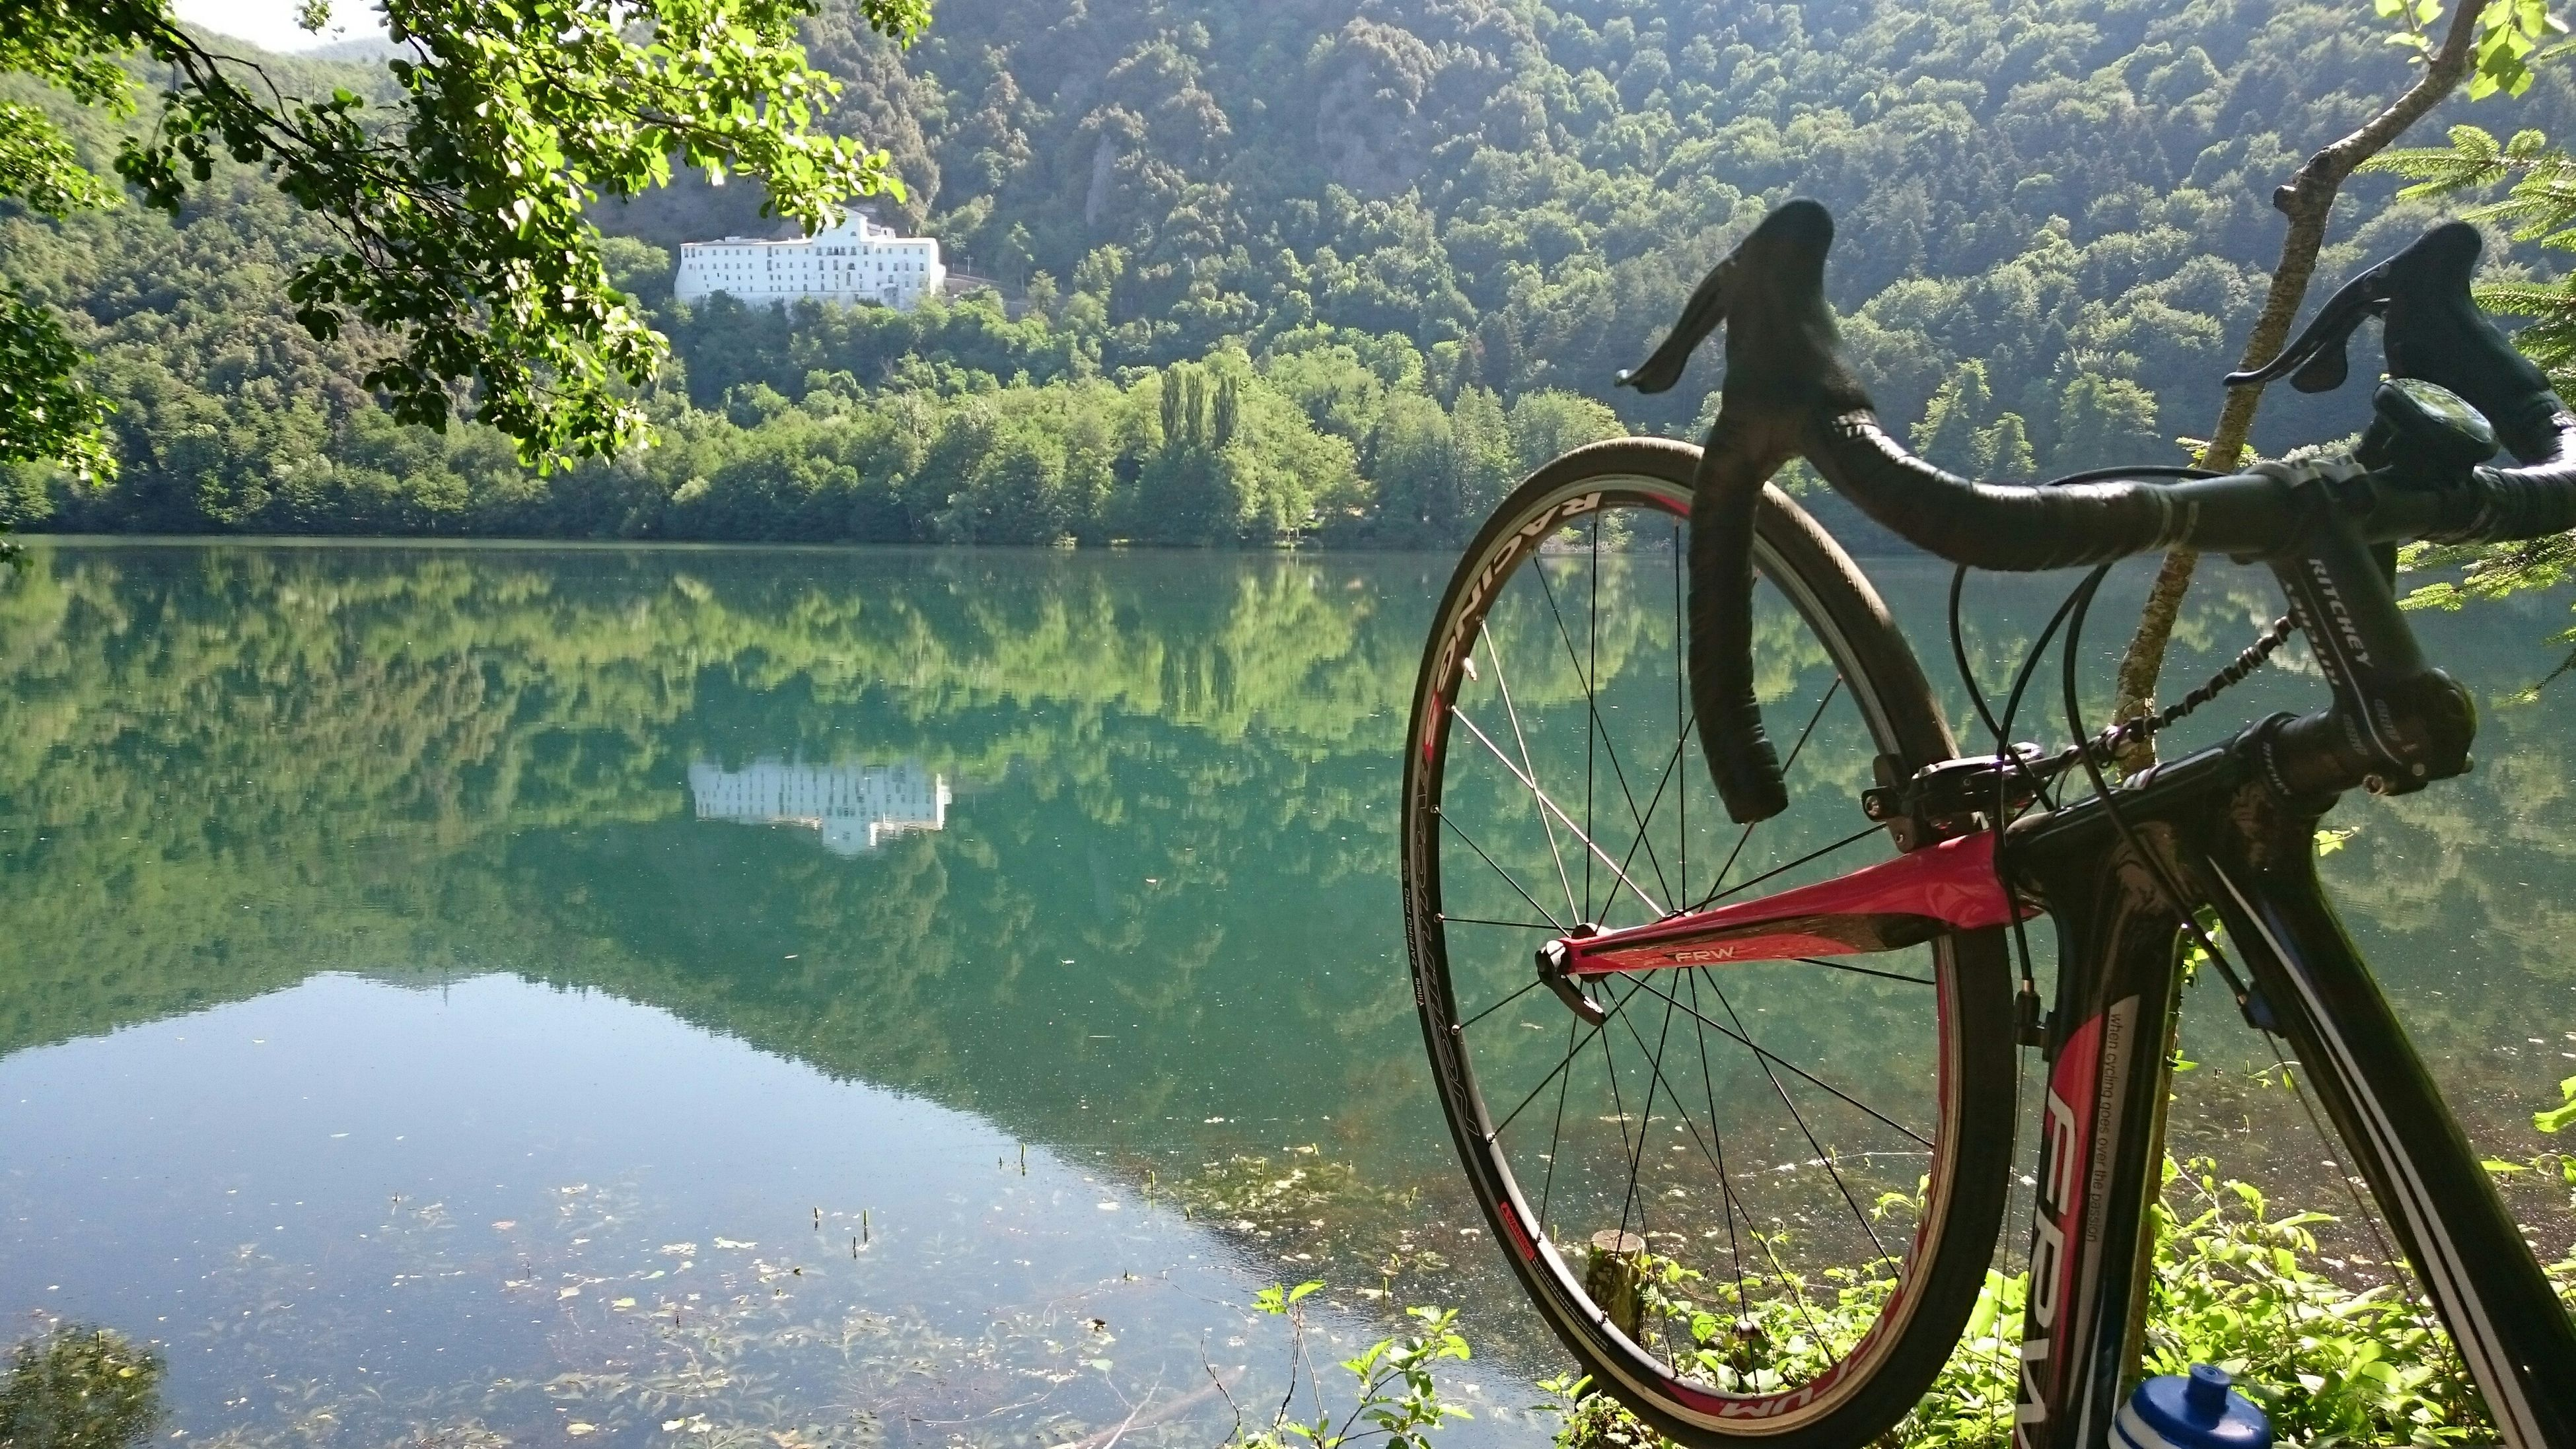 water, transportation, mode of transport, bicycle, river, lake, tree, land vehicle, tranquility, nature, nautical vessel, boat, beauty in nature, tranquil scene, plant, reflection, stationary, day, growth, no people